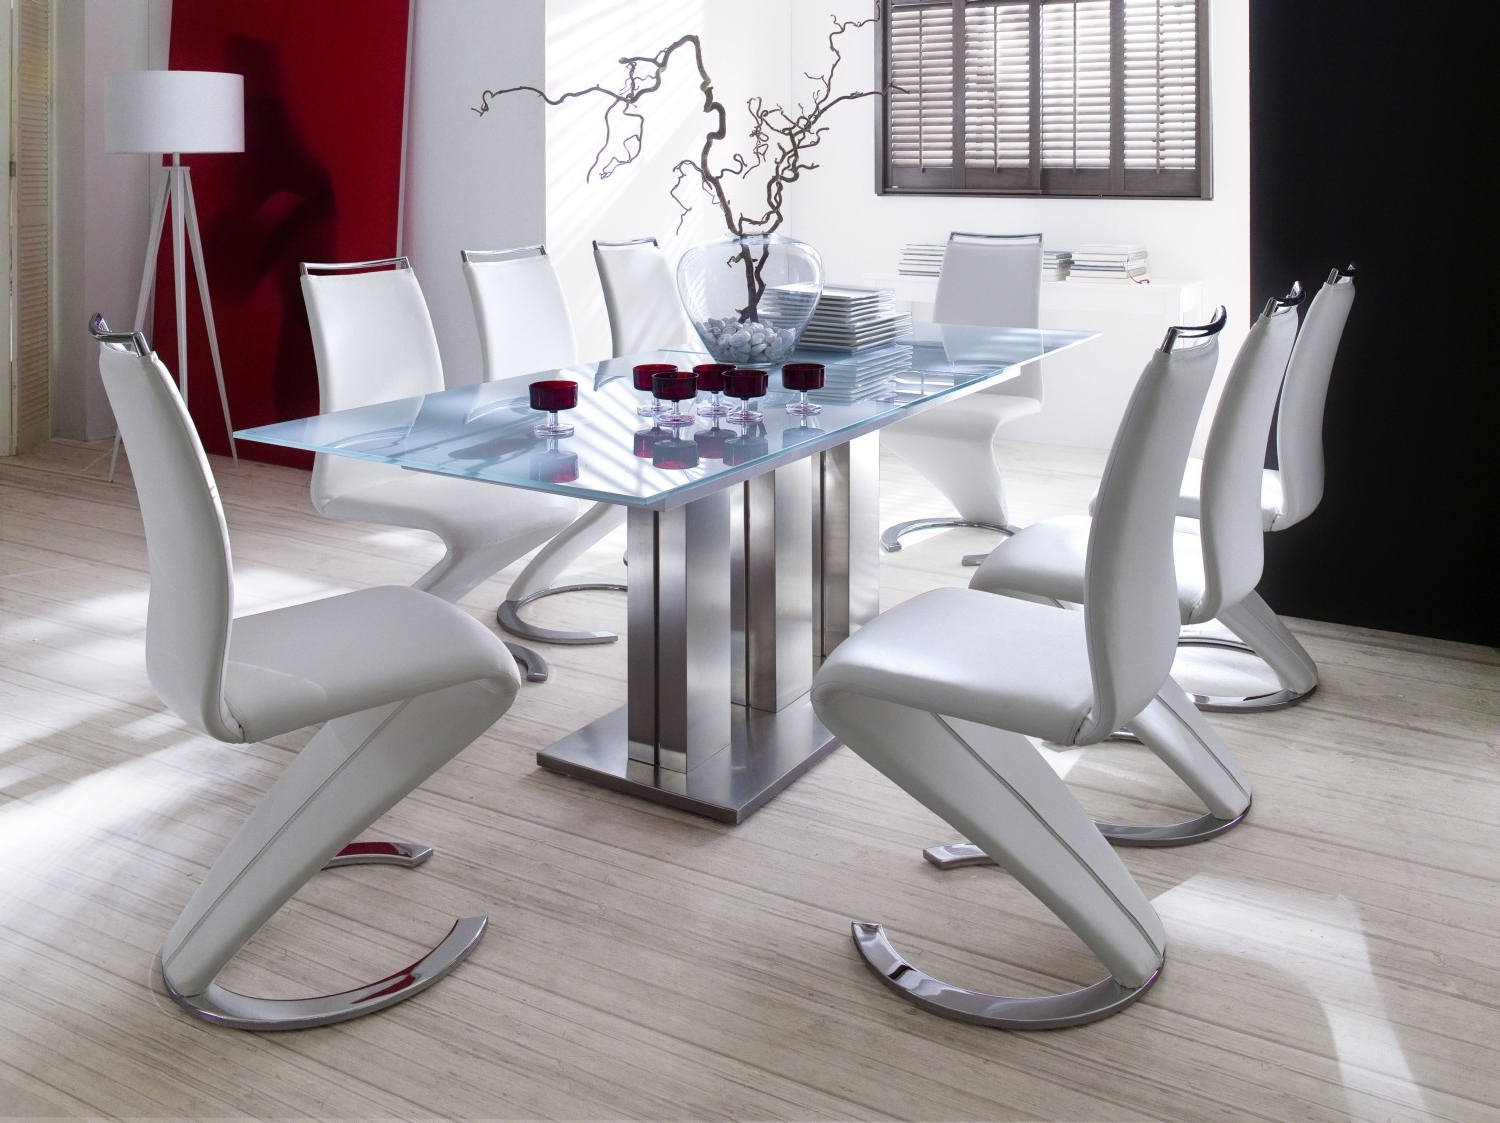 Luxury Modern Dining Room Tables — Bluehawkboosters Home Design With Popular Modern Dining Room Sets (View 12 of 25)